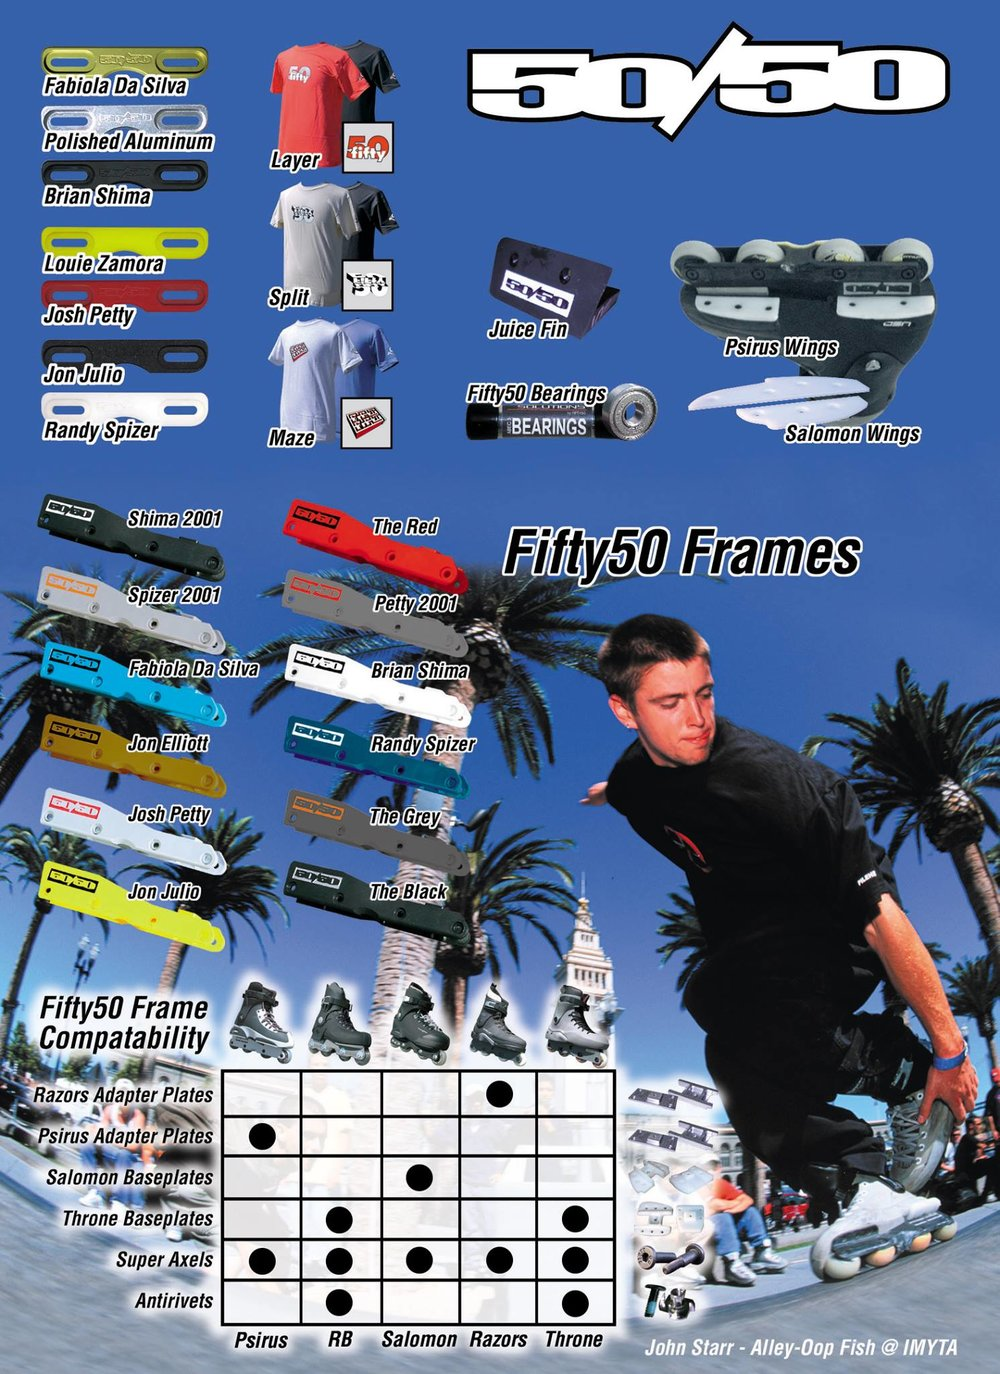 The peak of 50/50 frames was visiable in this September 2000 Skate House ad. 12 different colors. You can see the different skates that were compatible as well.